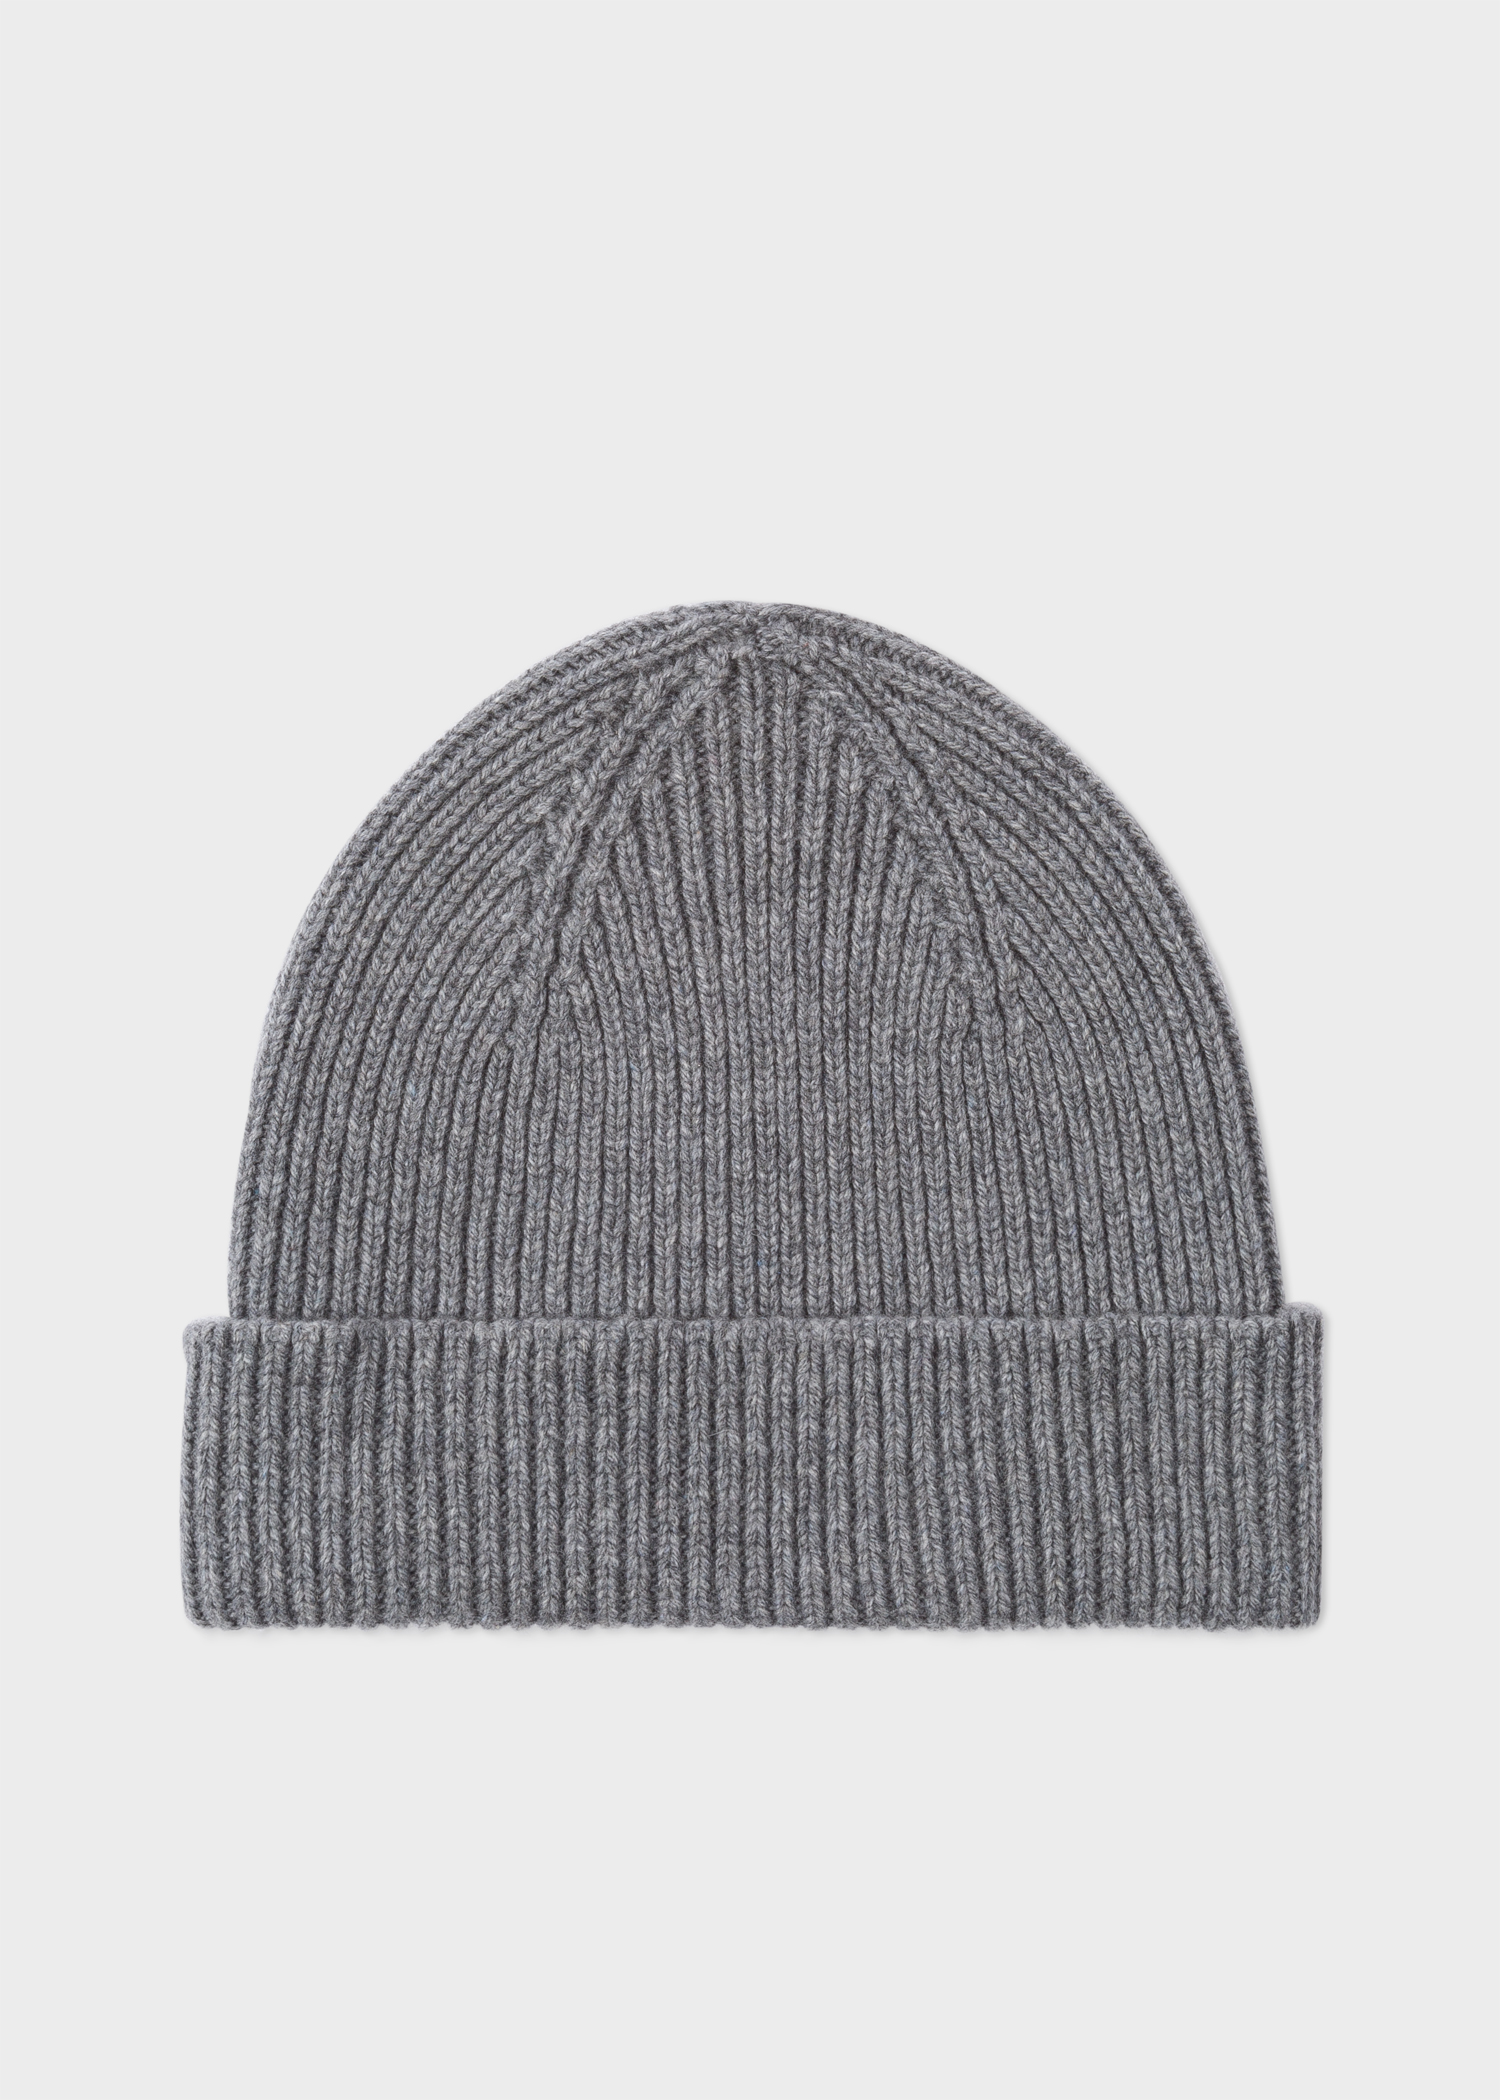 Men s Grey Cashmere-Blend Ribbed Beanie Hat - Paul Smith 4ce554a51e2